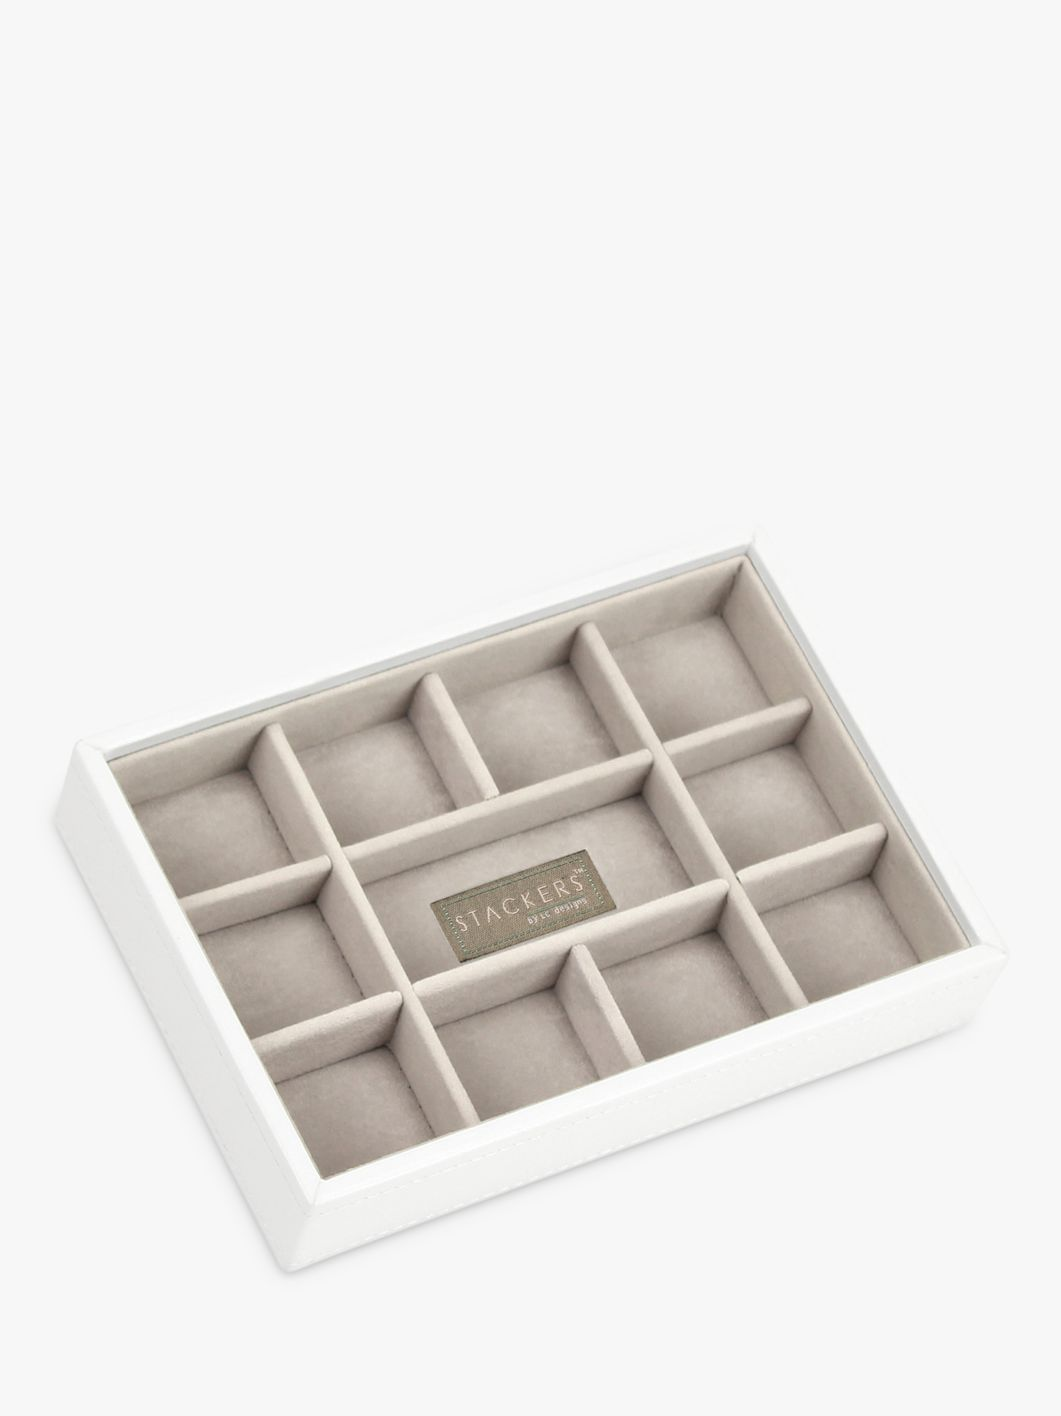 Stackers Stackers, Mini Jewellery Tray, White